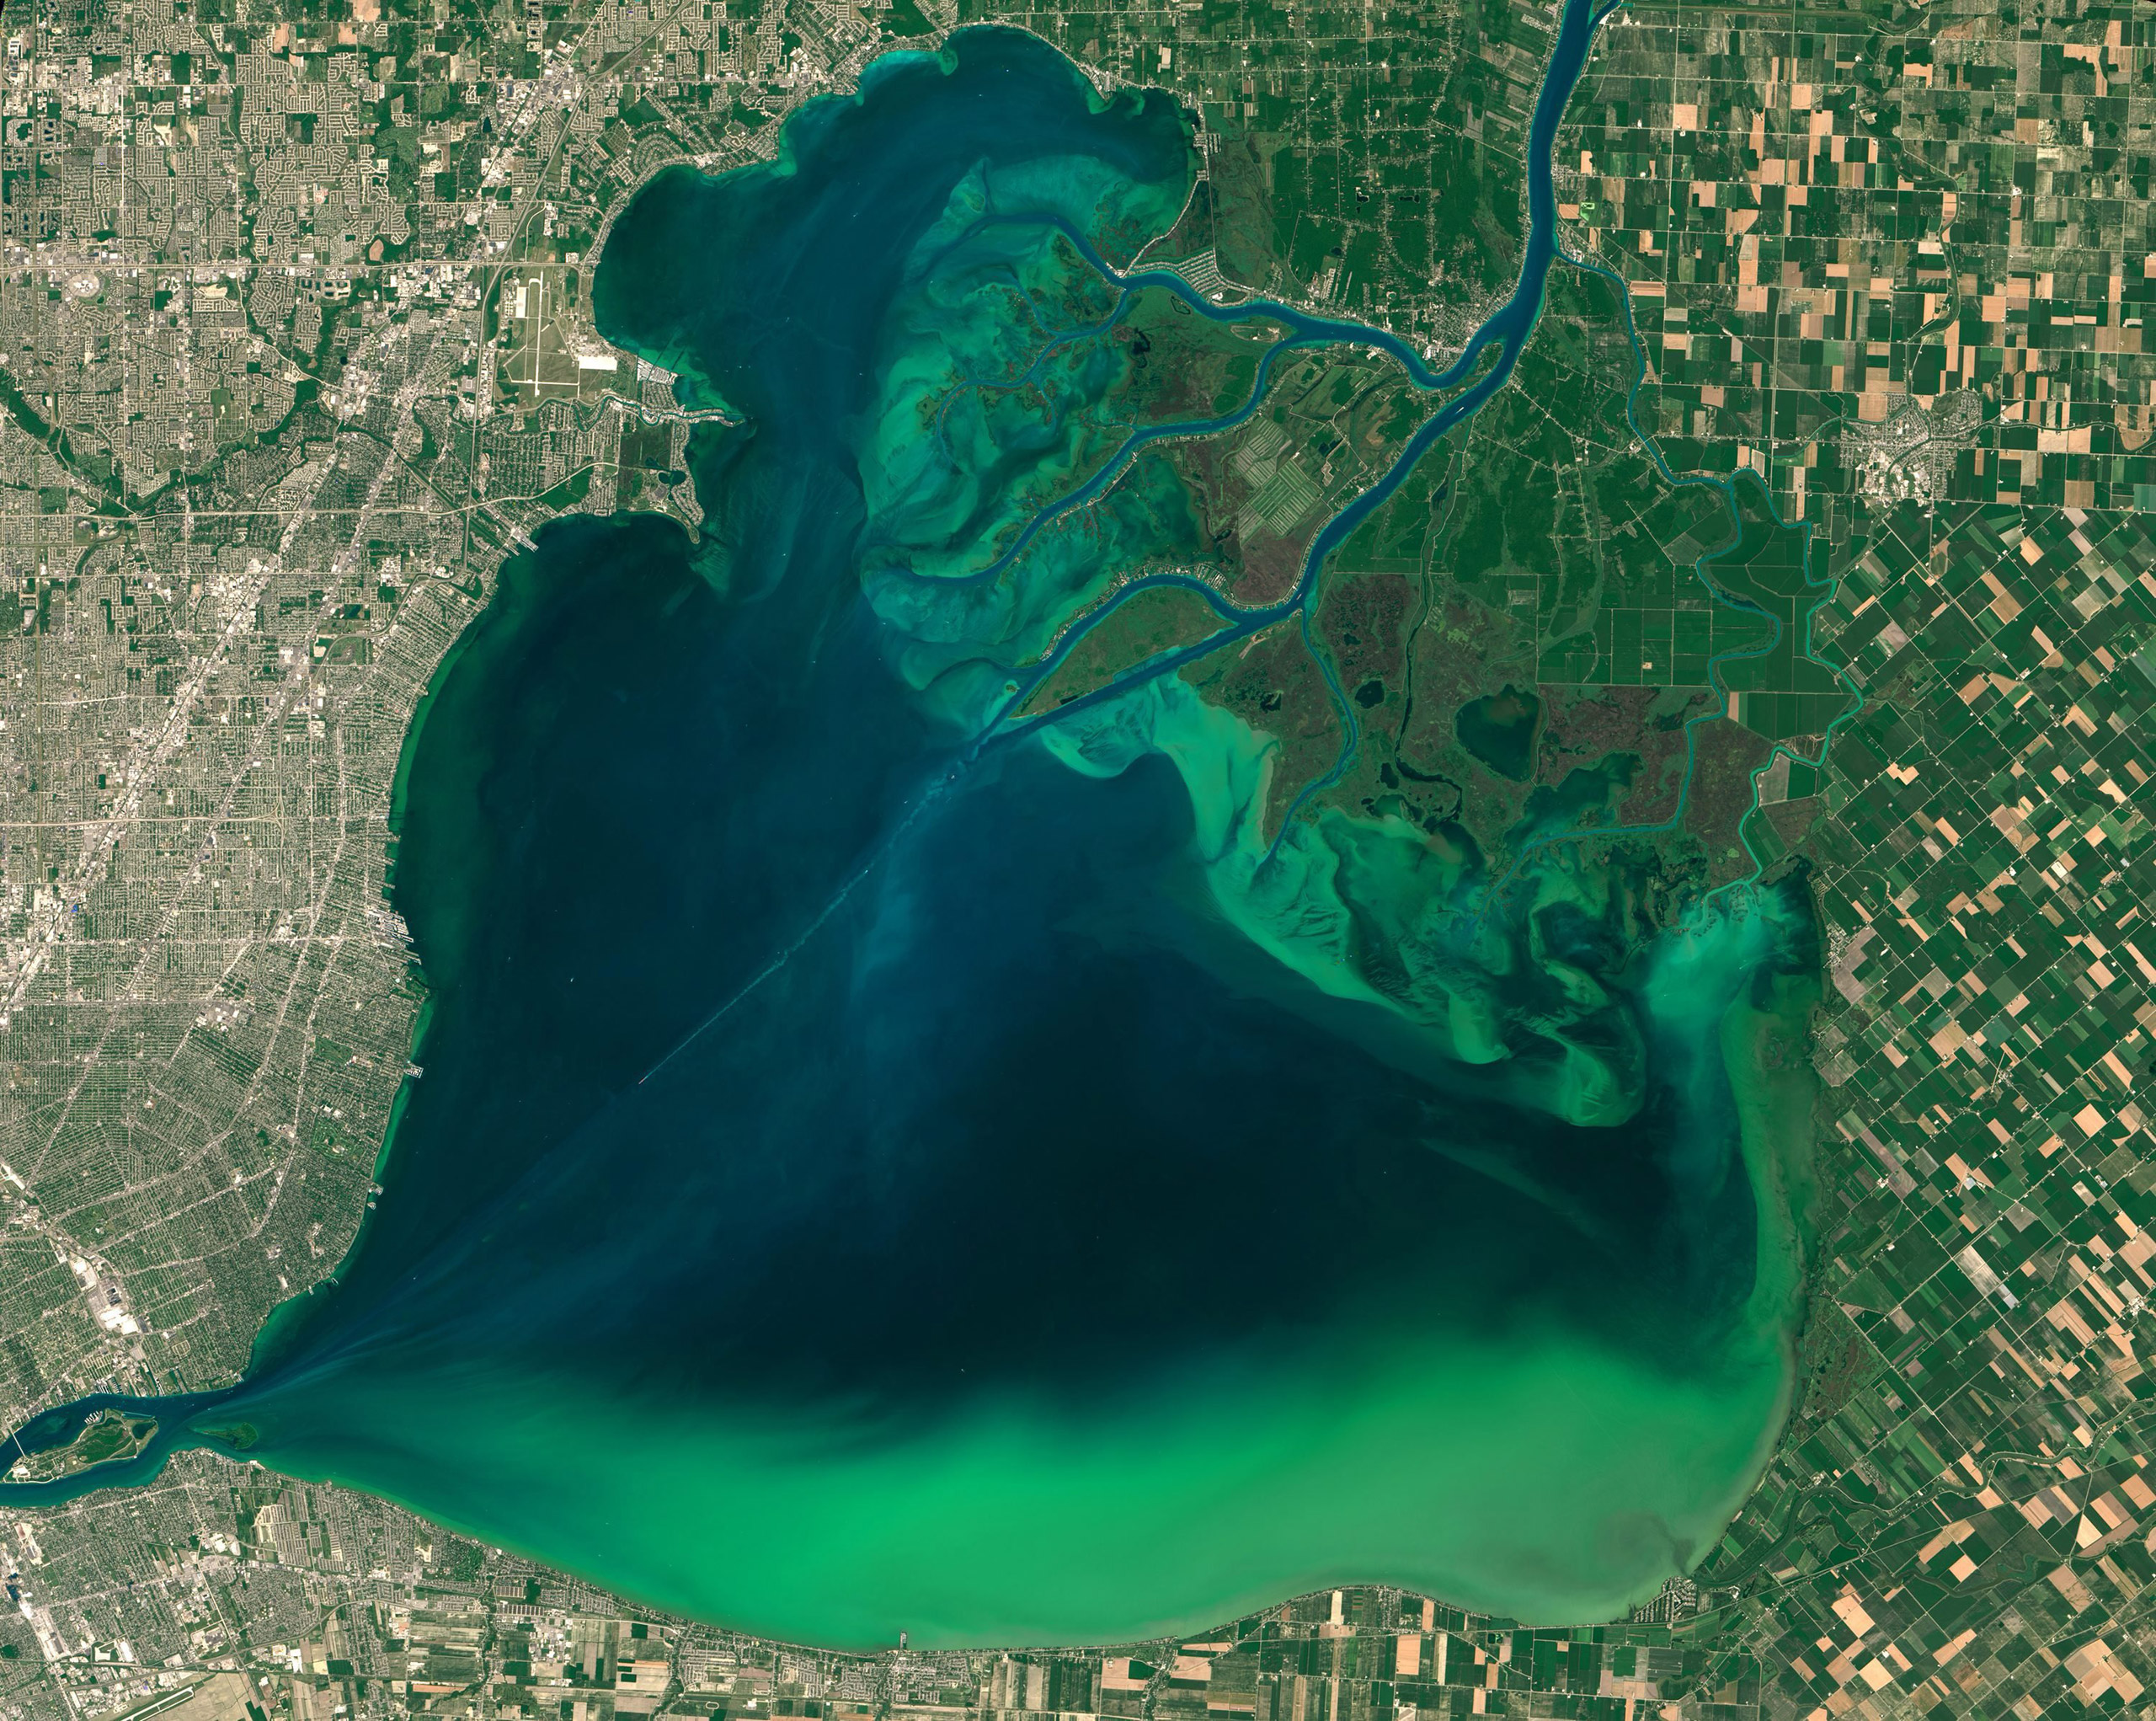 A satellite image of algal blooms around the Great Lakes, visible as swirls of green in this image of Lake St. Clair and in western Lake Erie, taken on July 28, 2015 and released on Aug. 4, 2015.